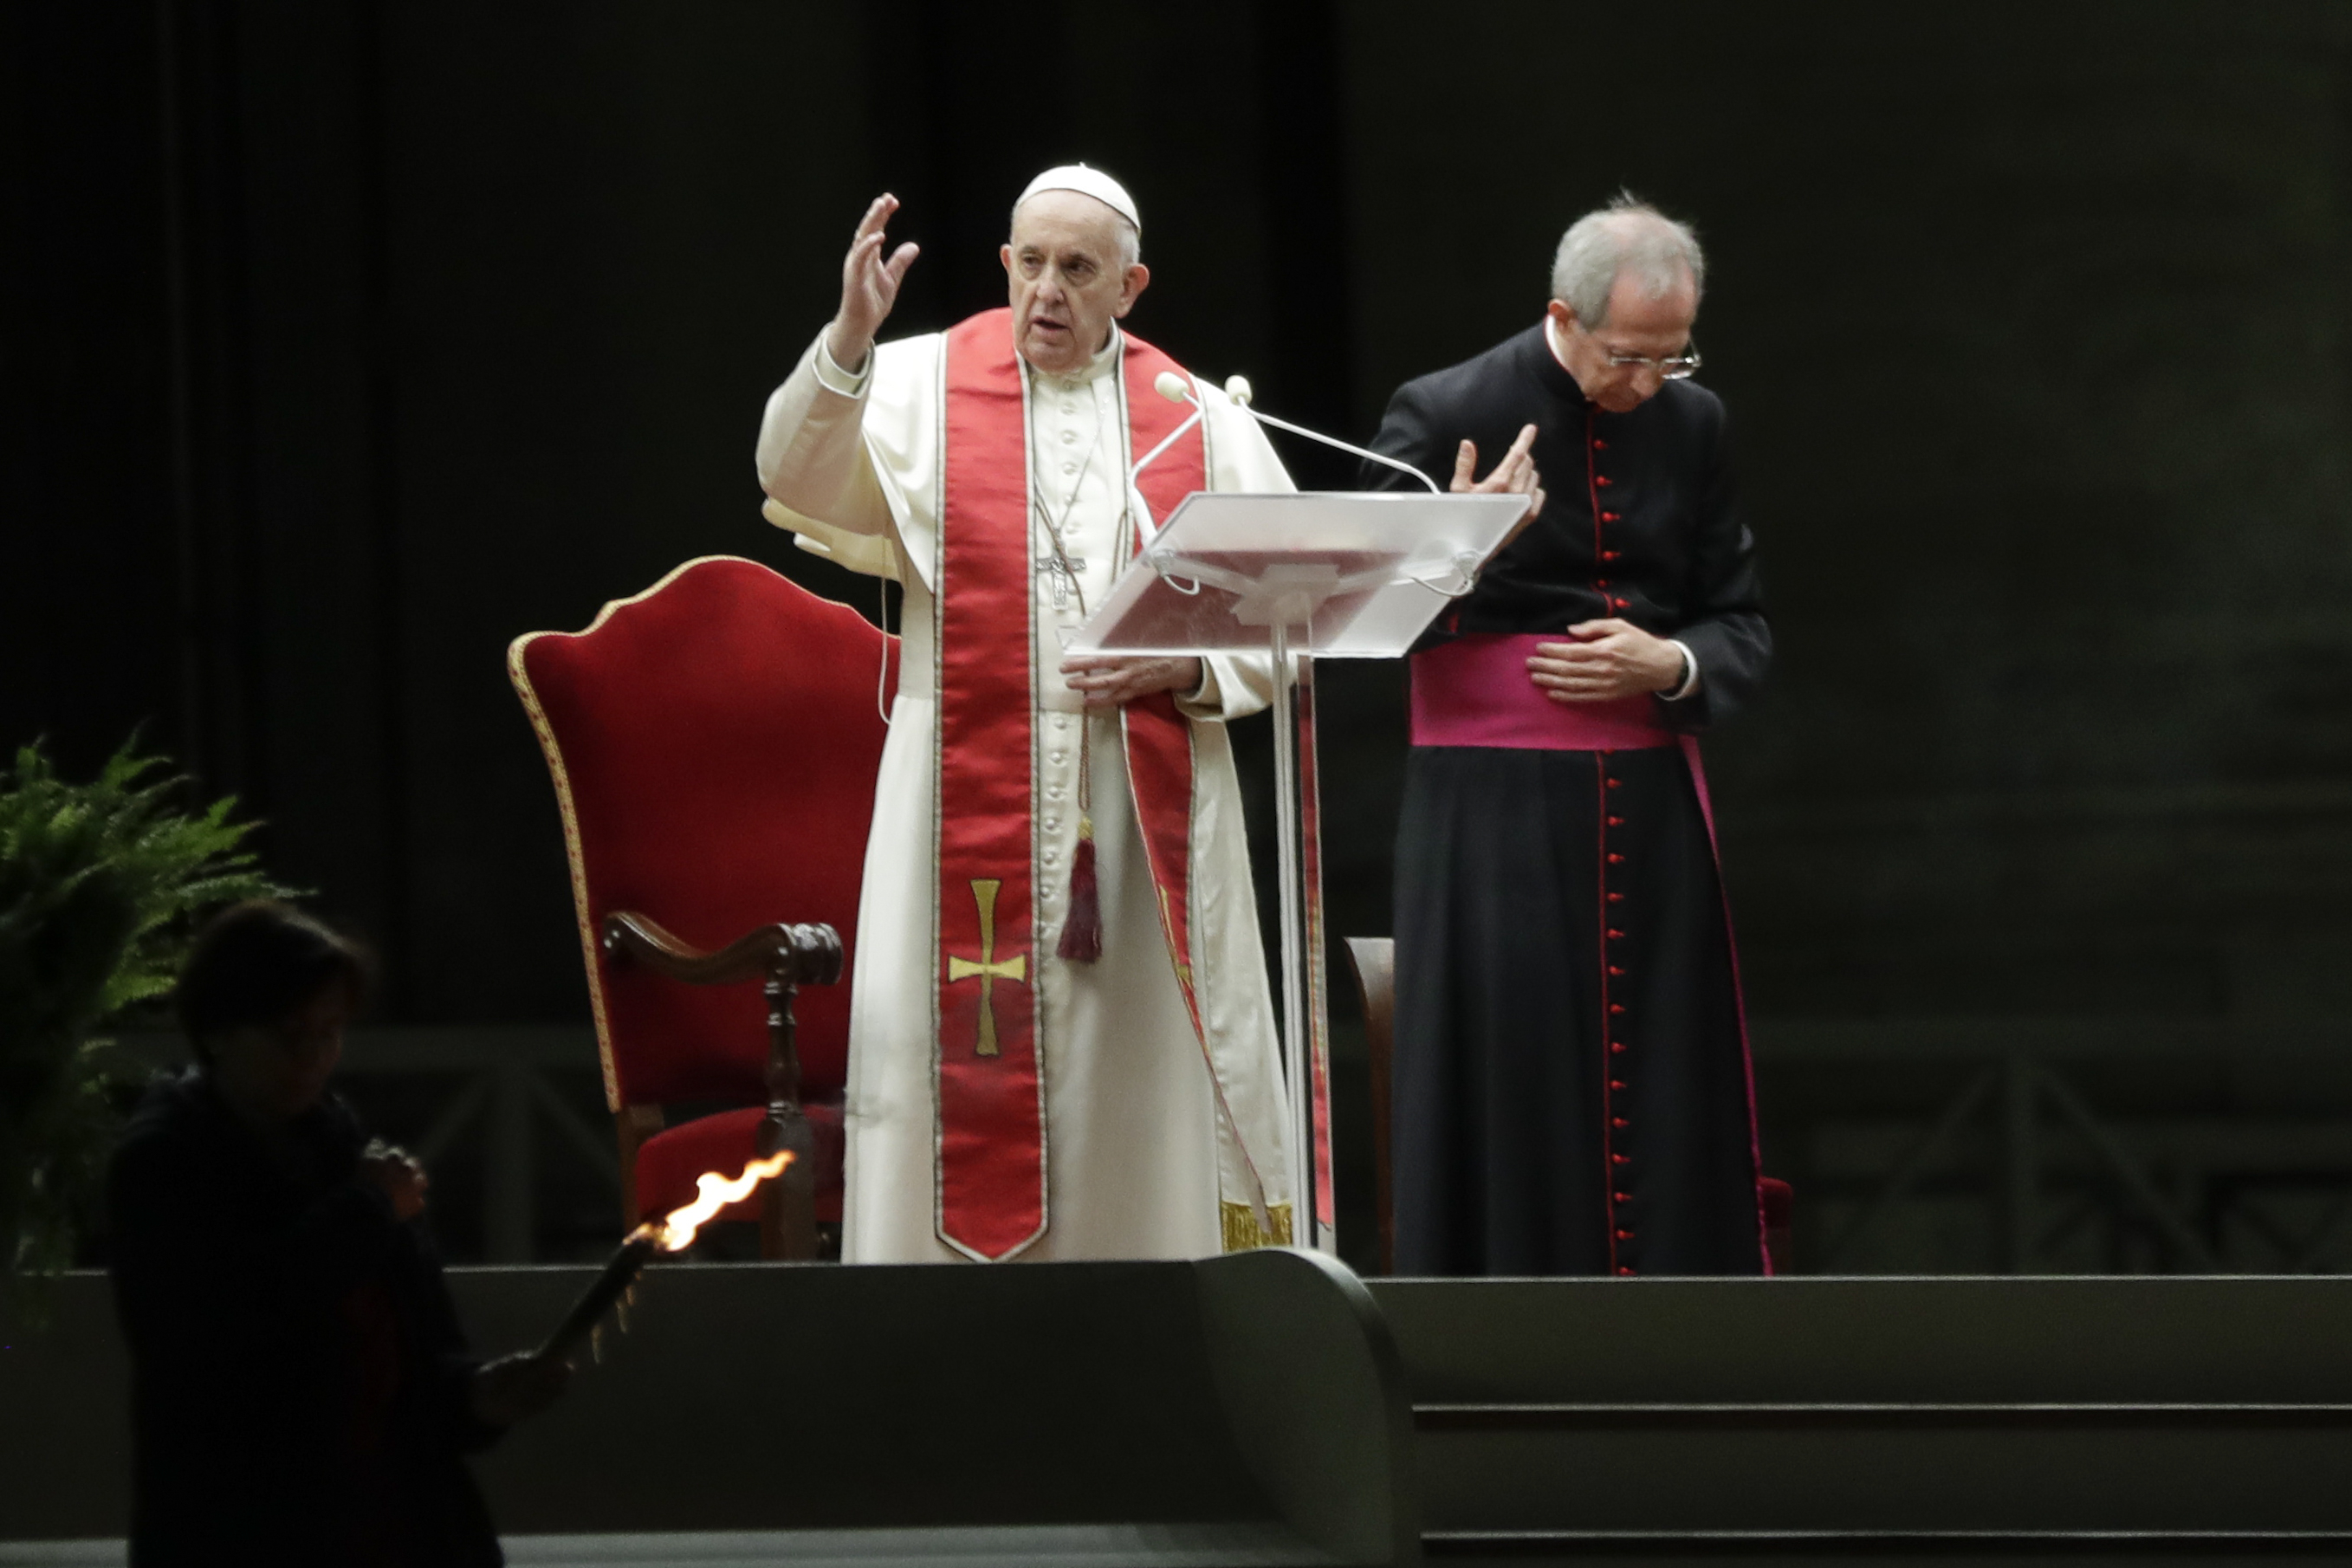 Pope Francis is flanked by Mons. Guido Marini as he delivers his blessing during the Via Crucis - or Way of the Cross - ceremony in front of St. Peter's Basilica, empty of the faithful following Italy's ban on gatherings during a national lockdown to contain contagion, at the Vatican, Friday, April 10, 2020. (AP Photo/Andrew Medichini, Pool)